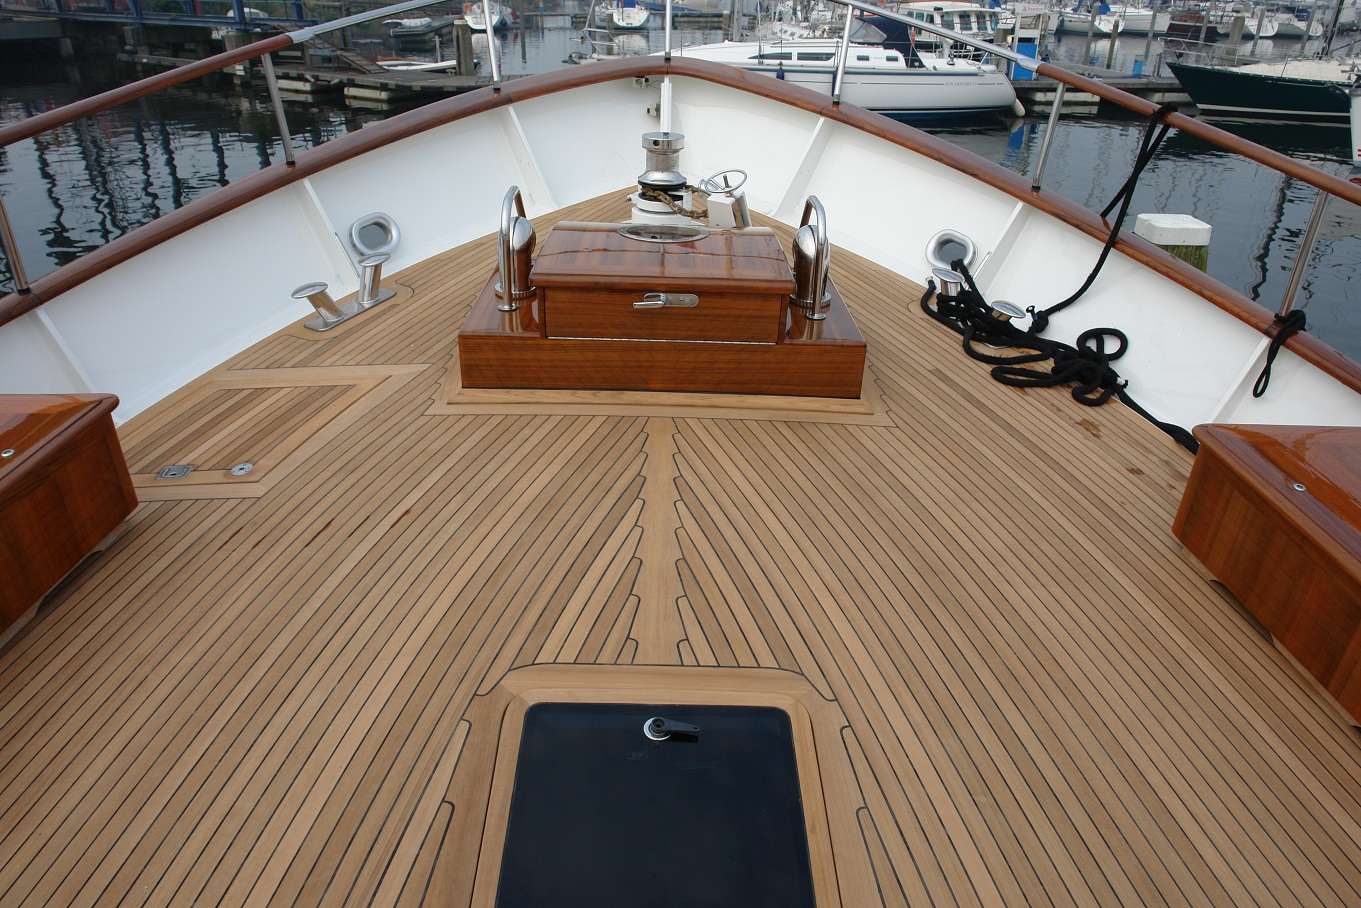 Why Use Rubber Mats On Boat Decks Flooring Blog